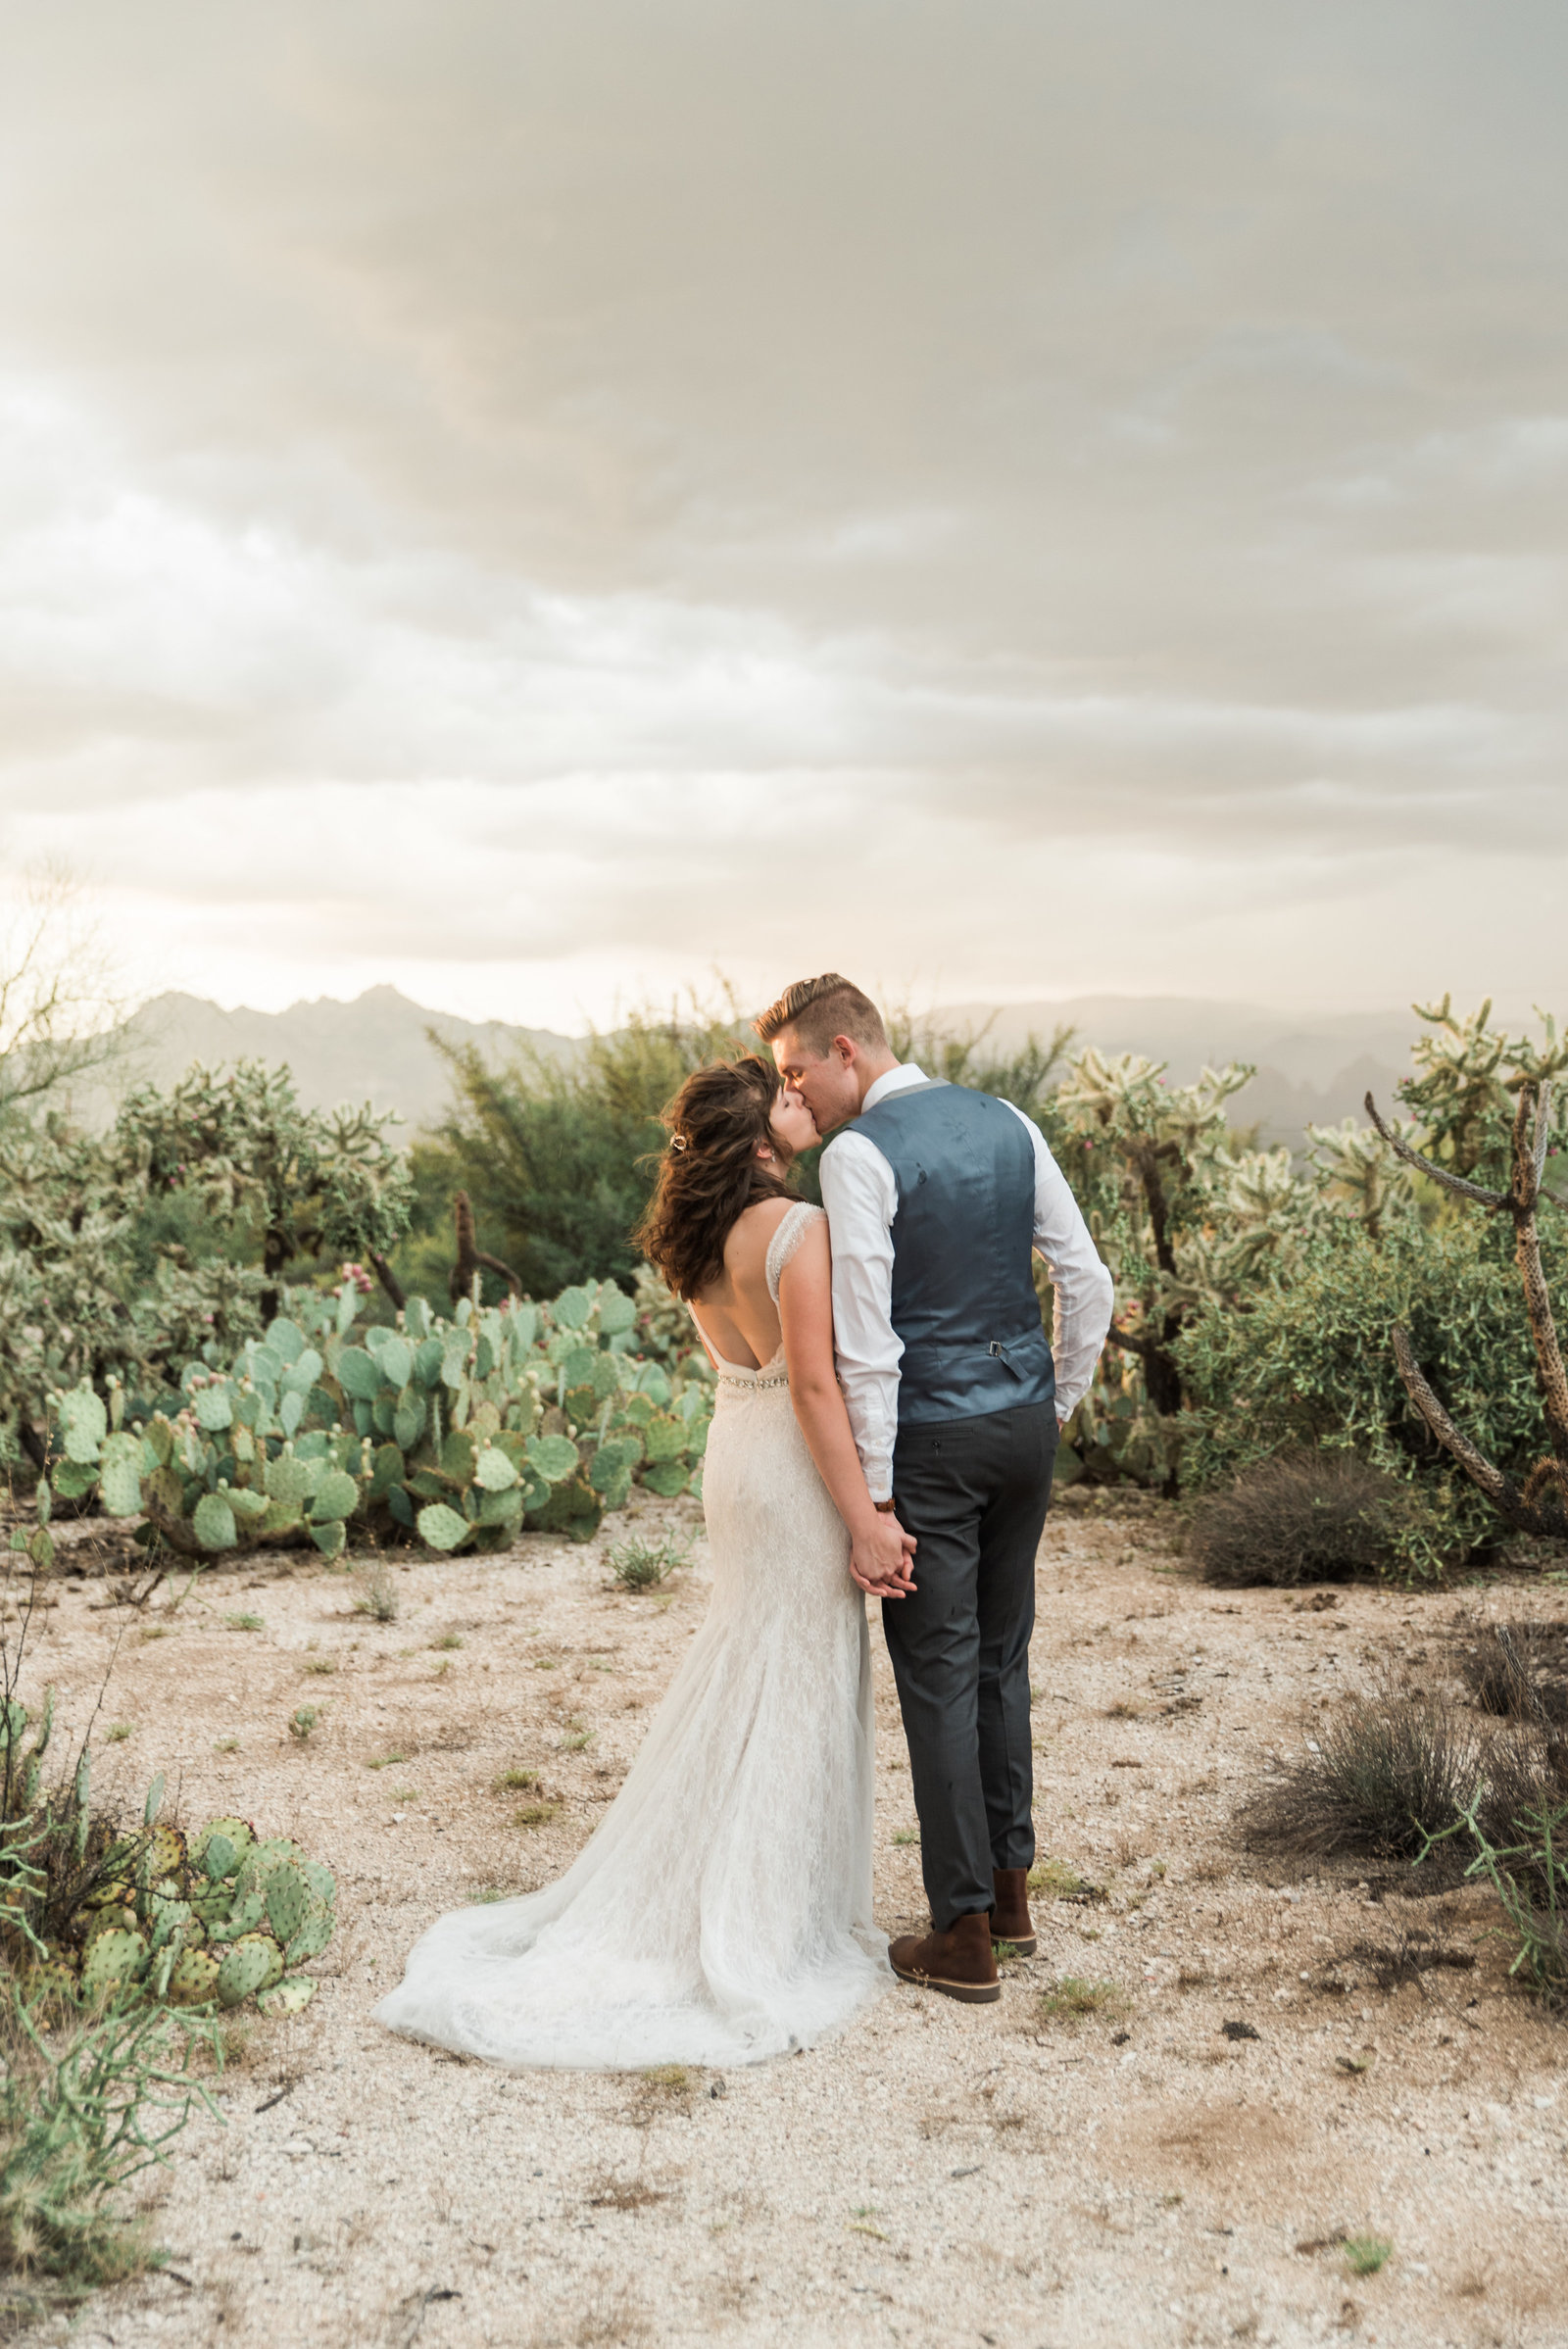 Classic Tucson Saguaro Buttes Desert Wedding Photo | Tucson Wedding Photographer | West End Photography